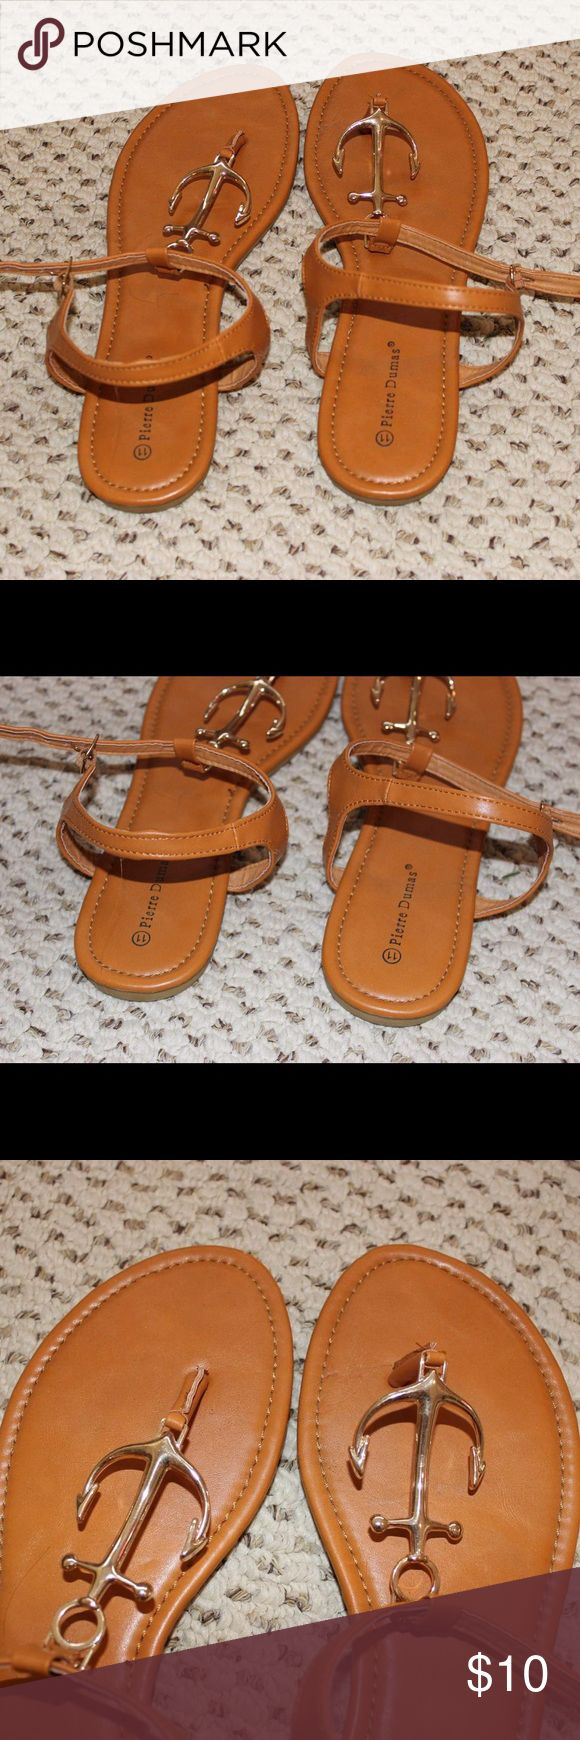 Pierre Dumas anchor sandals Worn once on fourth of july :) runs a little narrow and true to size 11 Pierre Dumas Shoes Sandals